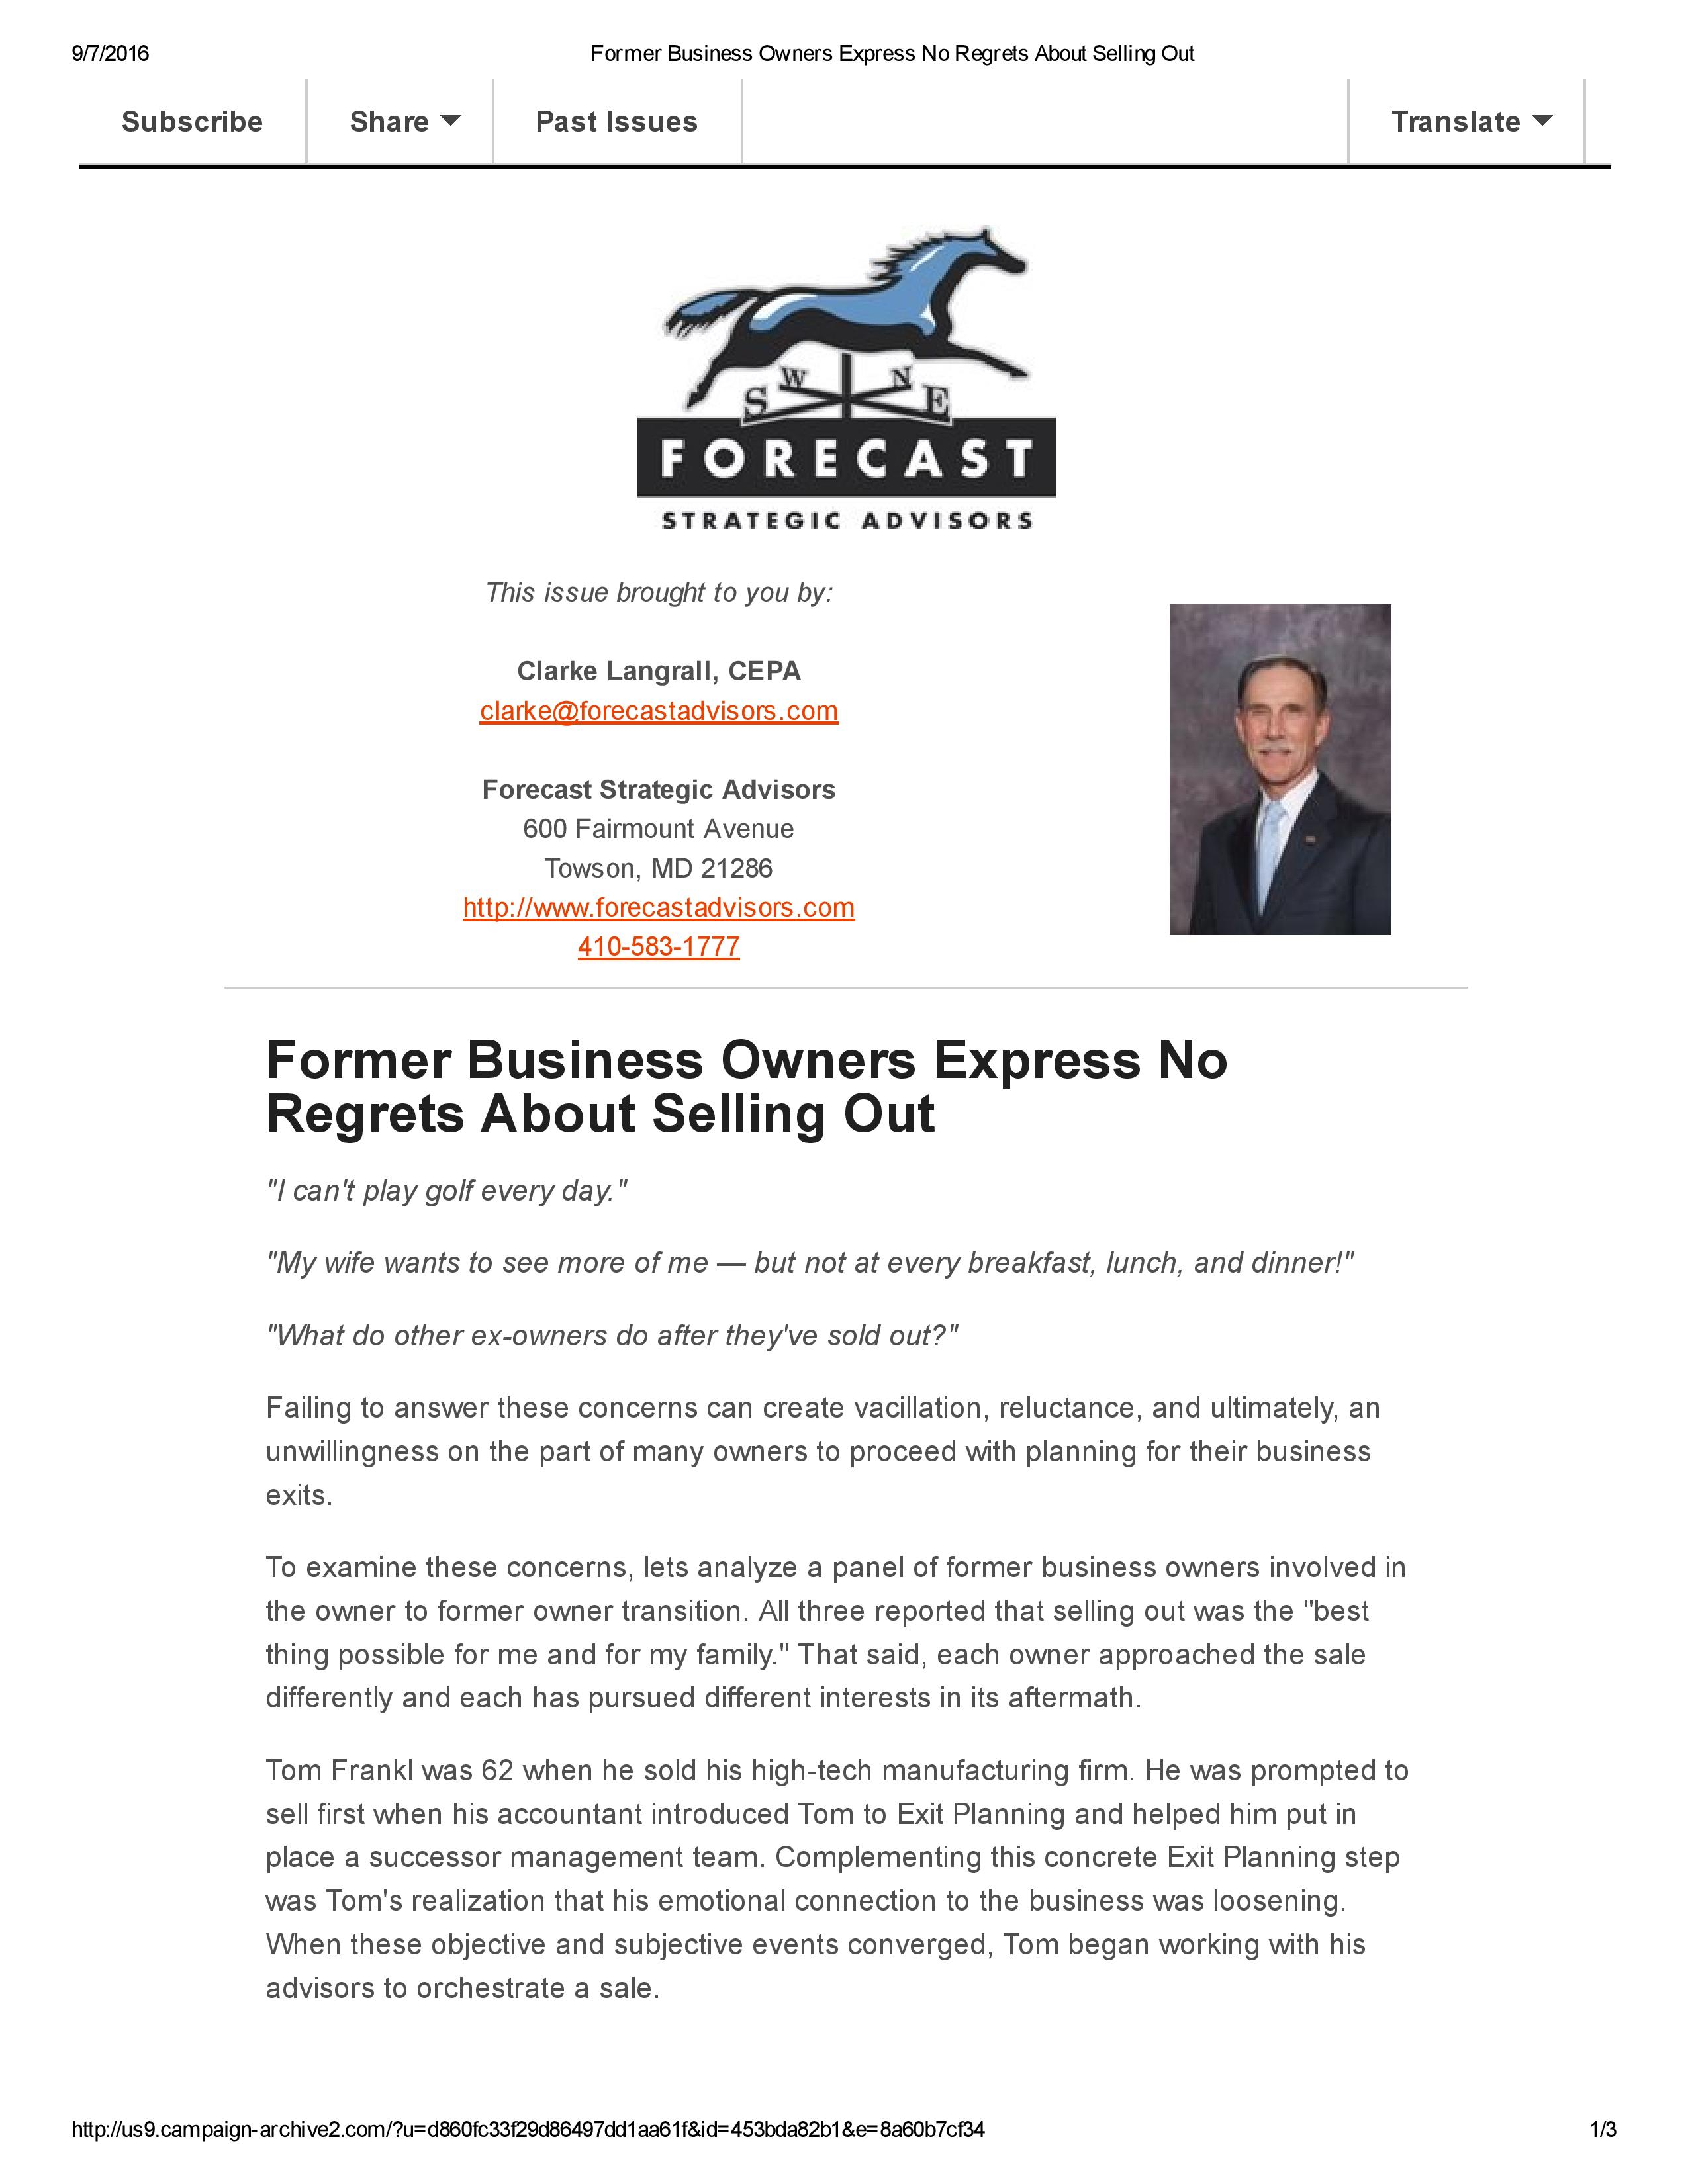 former-business-owners-express-no-regrets-about-selling-out-page-001